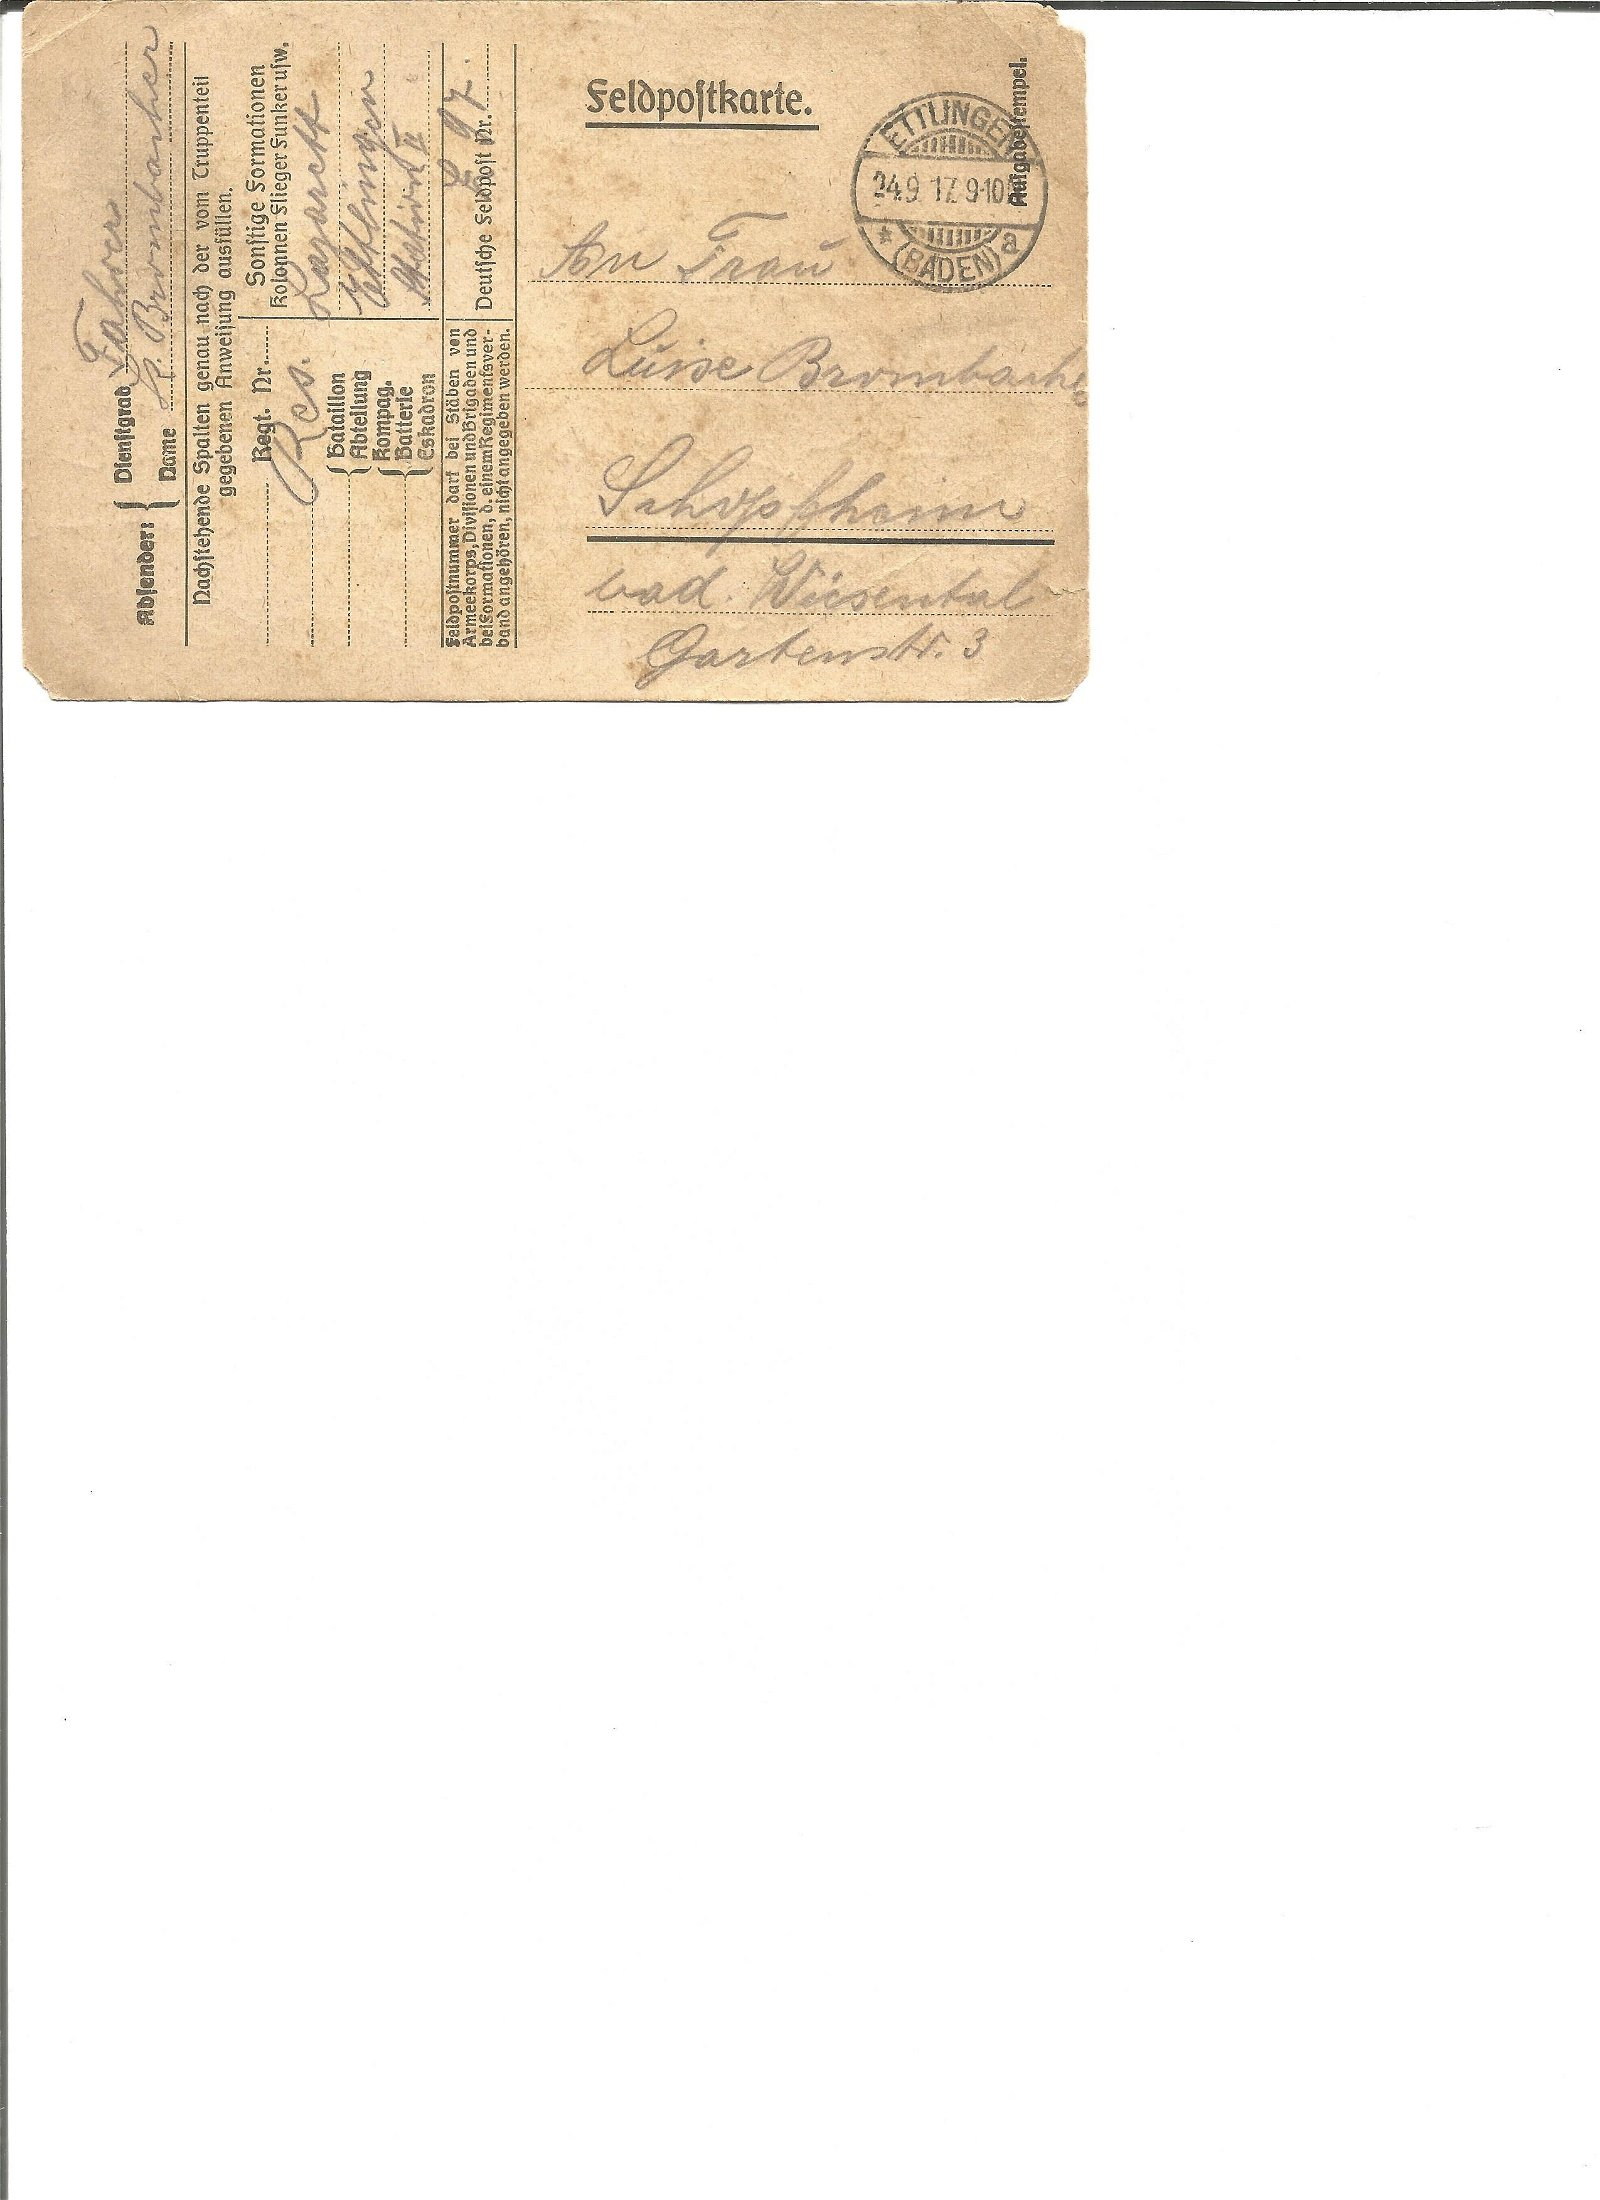 World War I personal narrative date stamped 17, 9,